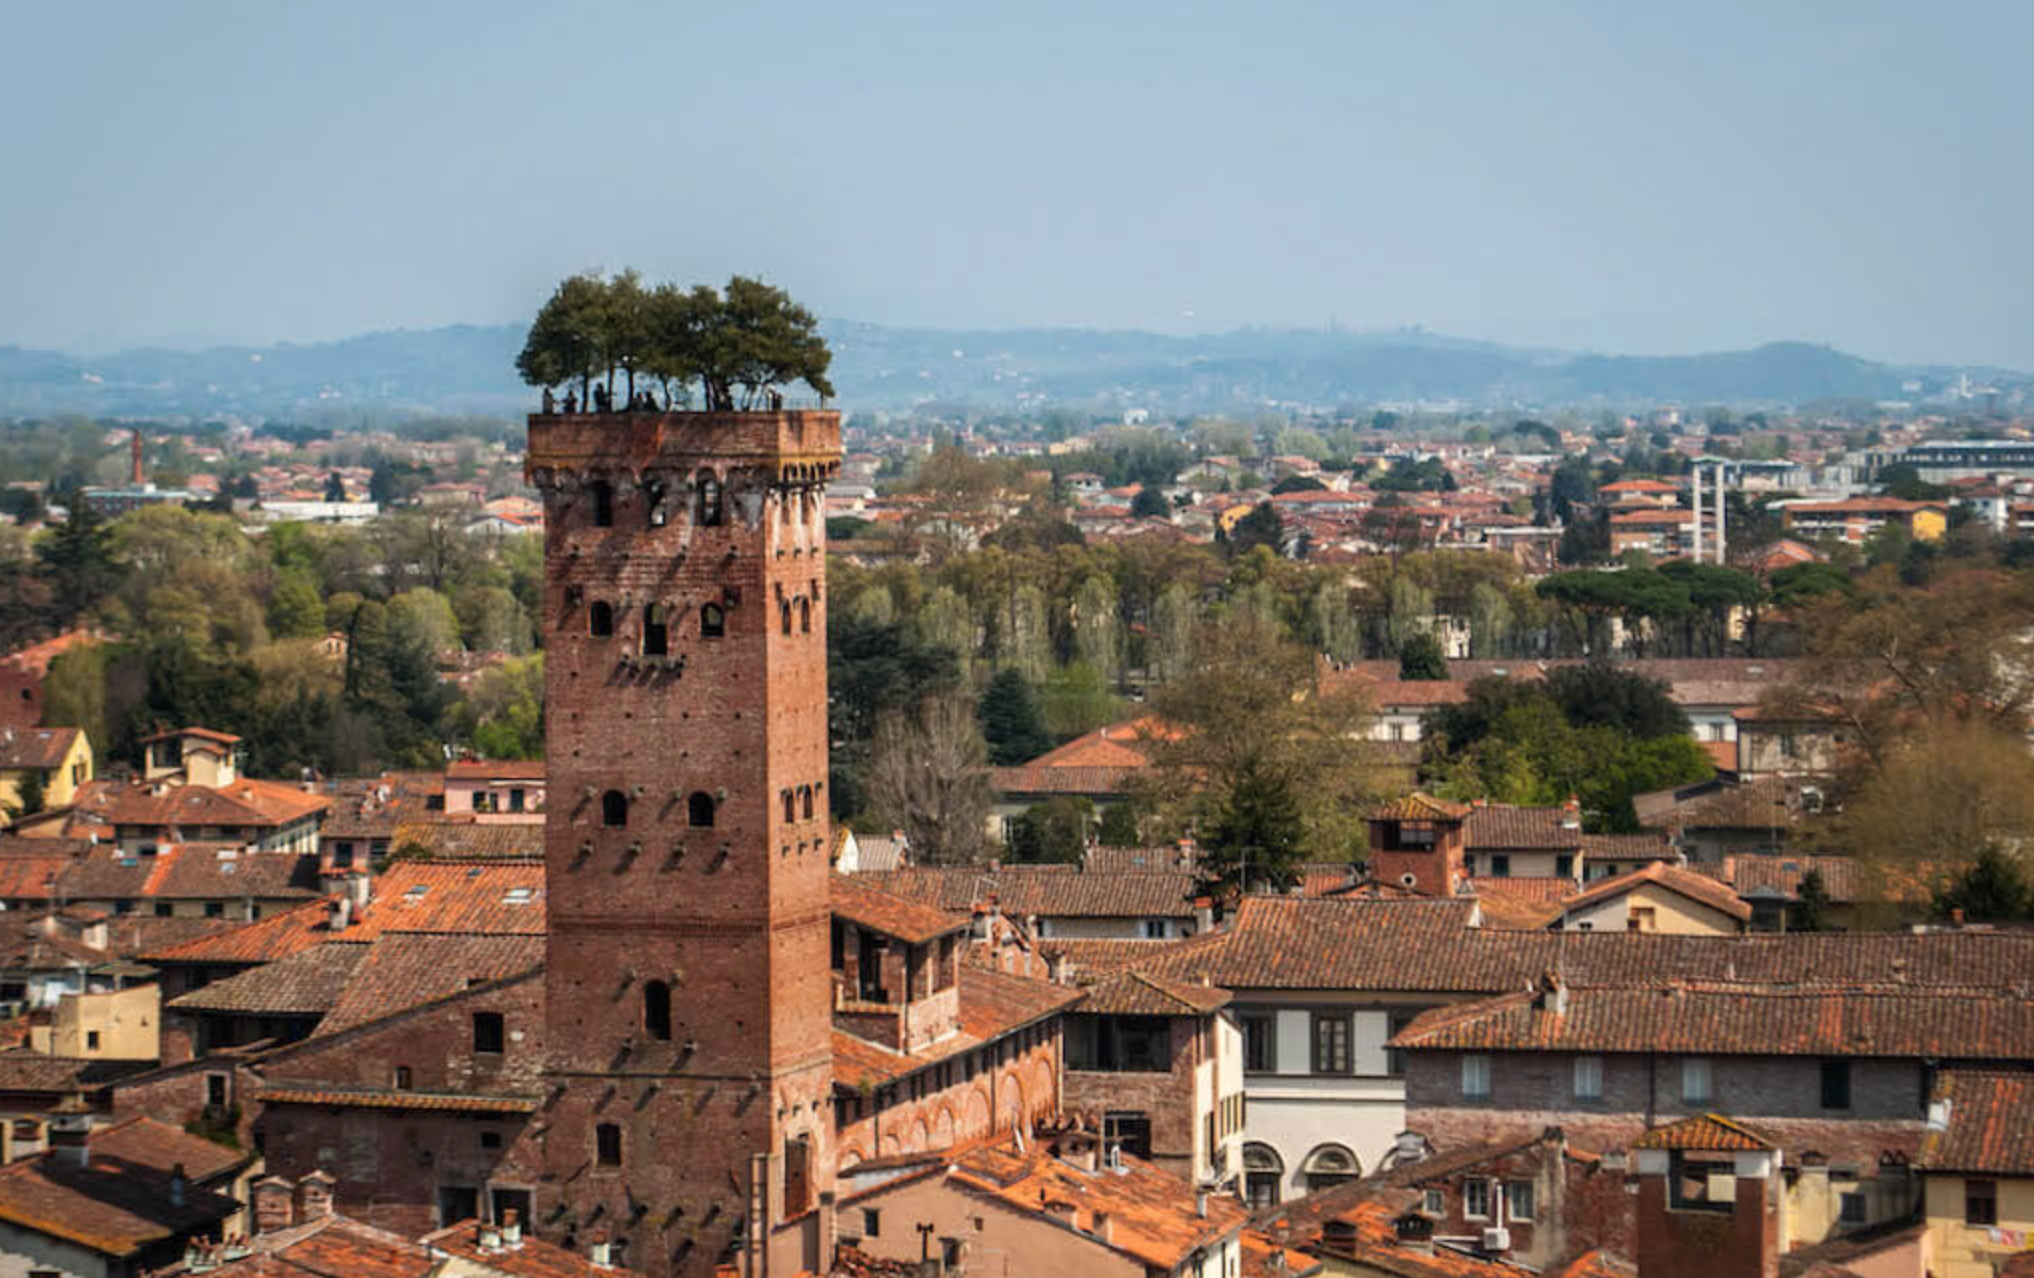 The Torre Guinigi dates from the 1300s and has an impressive garden at the top which is open to anyone who wishes to climb the stairs!